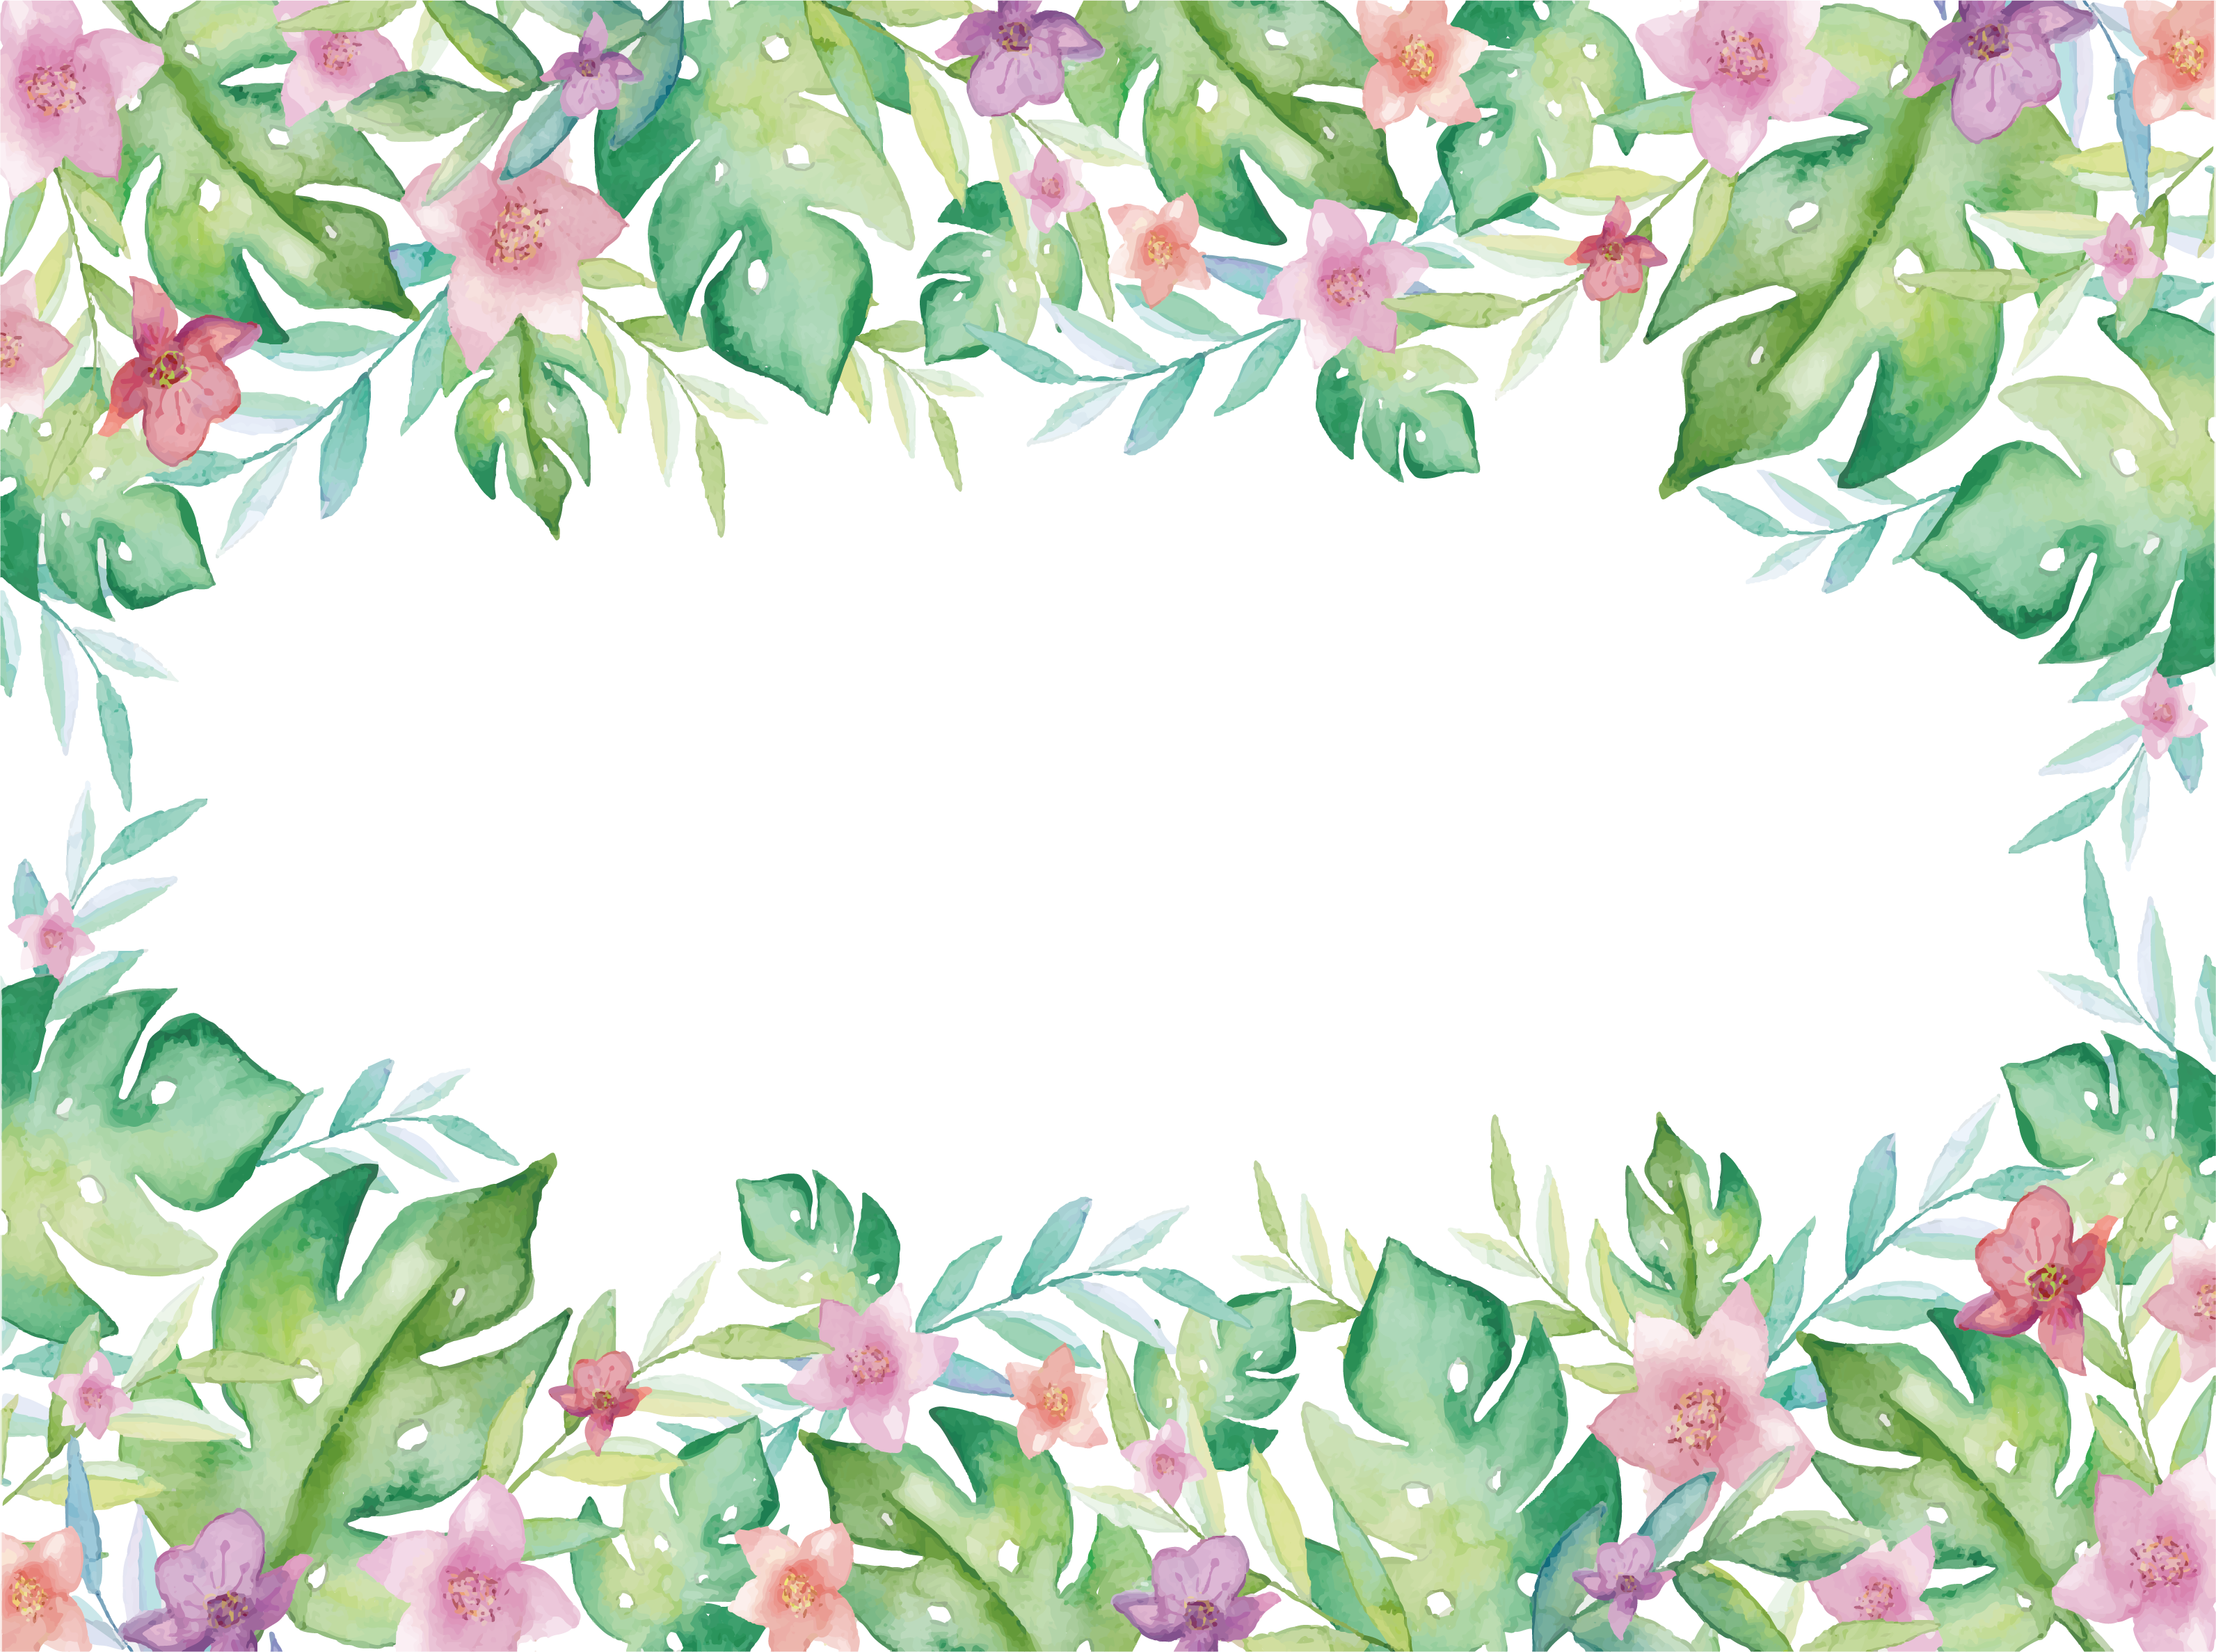 Watercolor Euclidean Plant Vector Border Free HD Image PNG Image